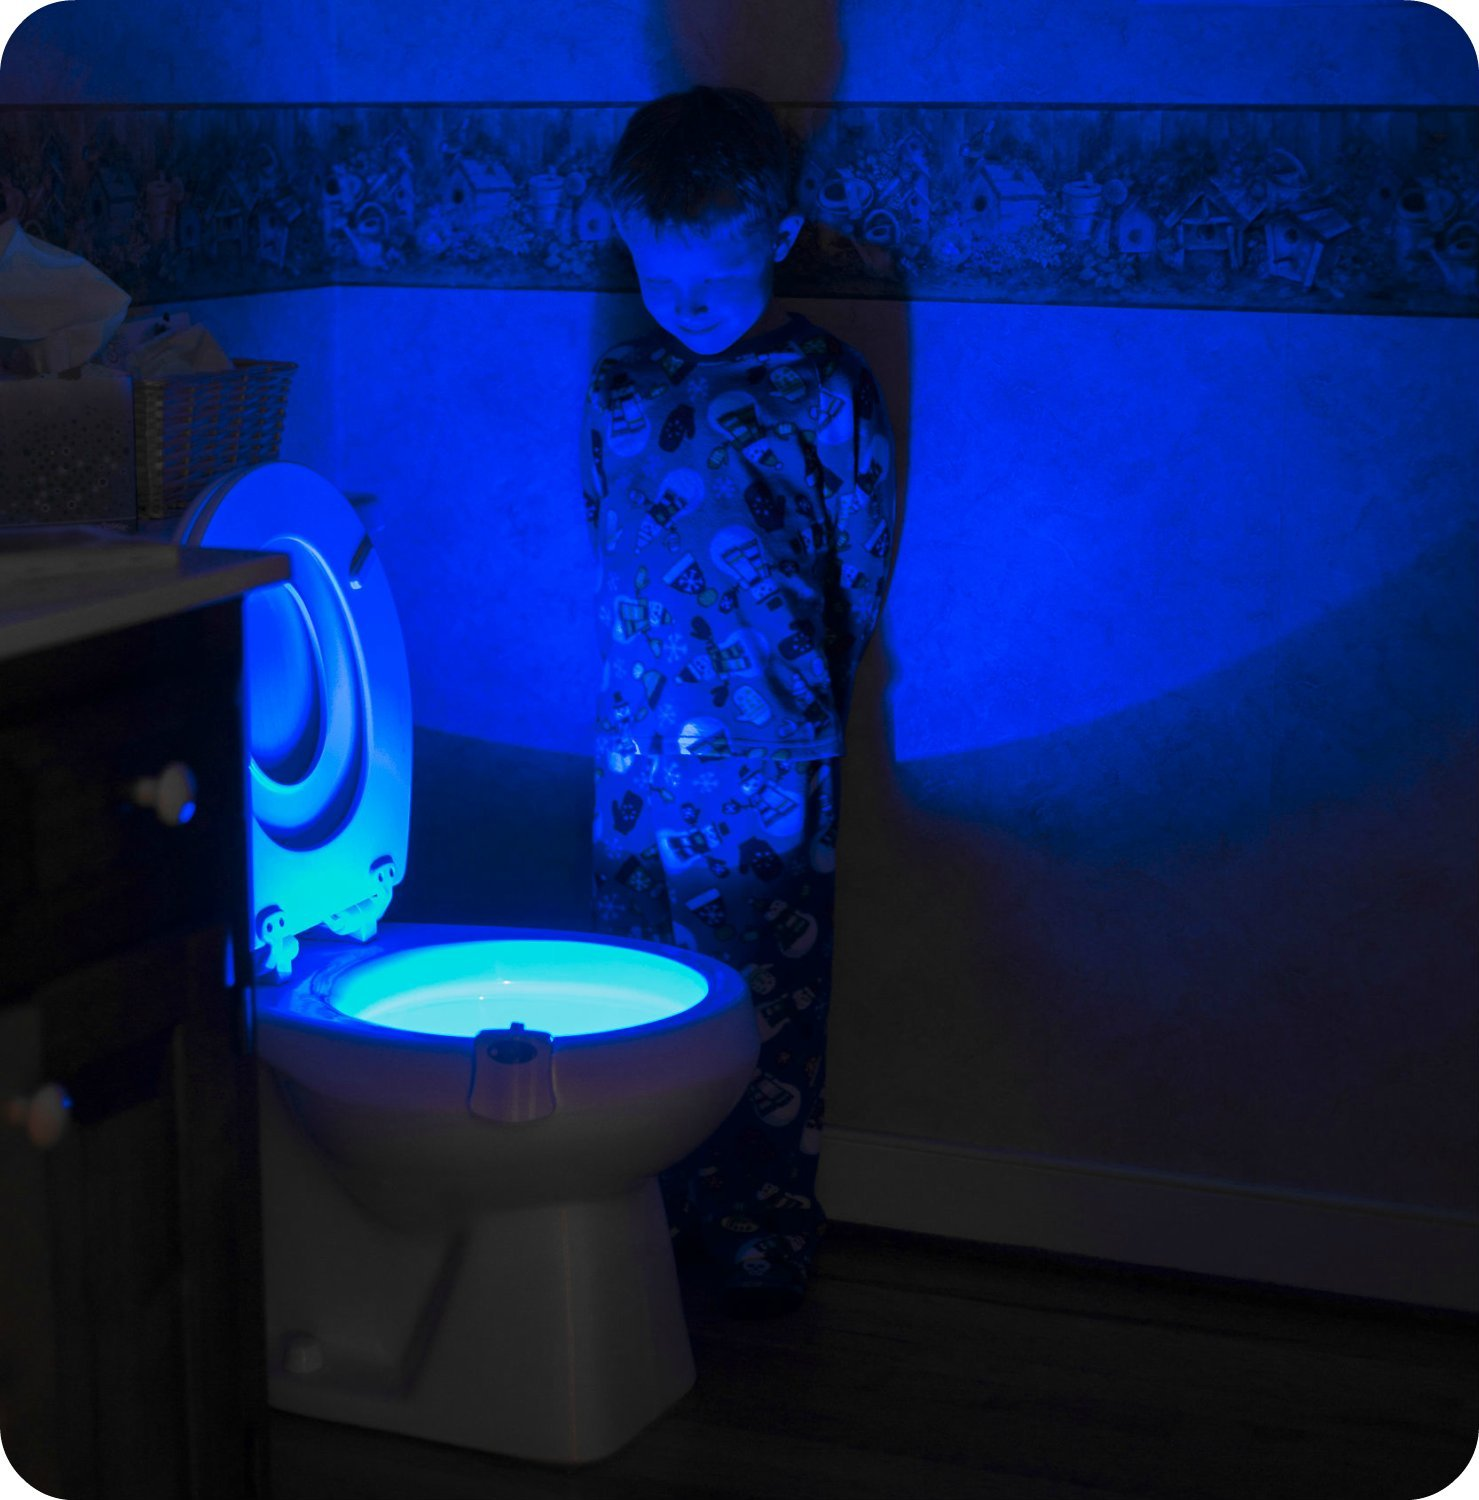 Rainbowl motion sensor toilet night light funny unique birthday rainbowl motion sensor toilet night light funny unique birthday gift idea for dad mom him her men women kids cool new fun gadget mozeypictures Image collections